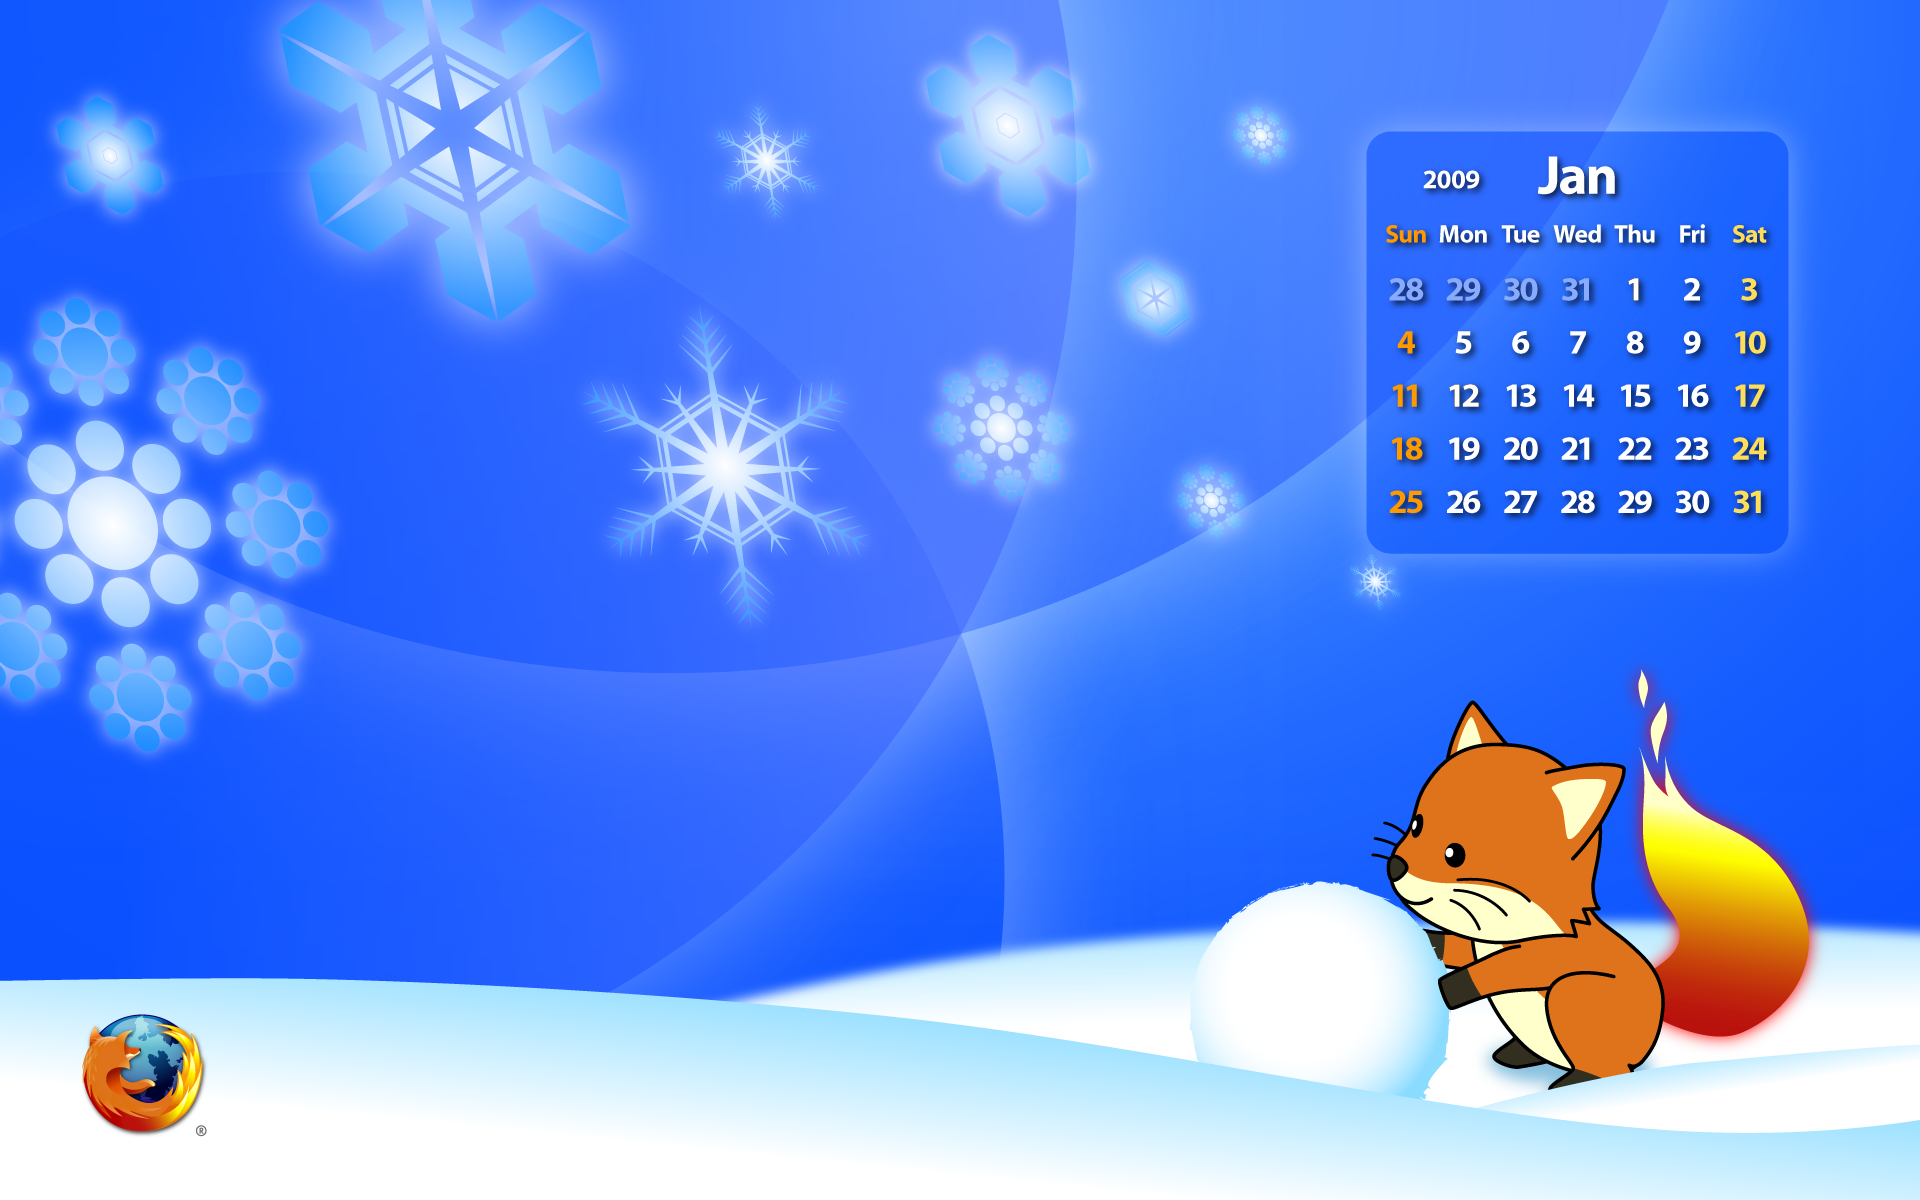 january wallpaper foxkeh sun wallpapers universal 1920x1200